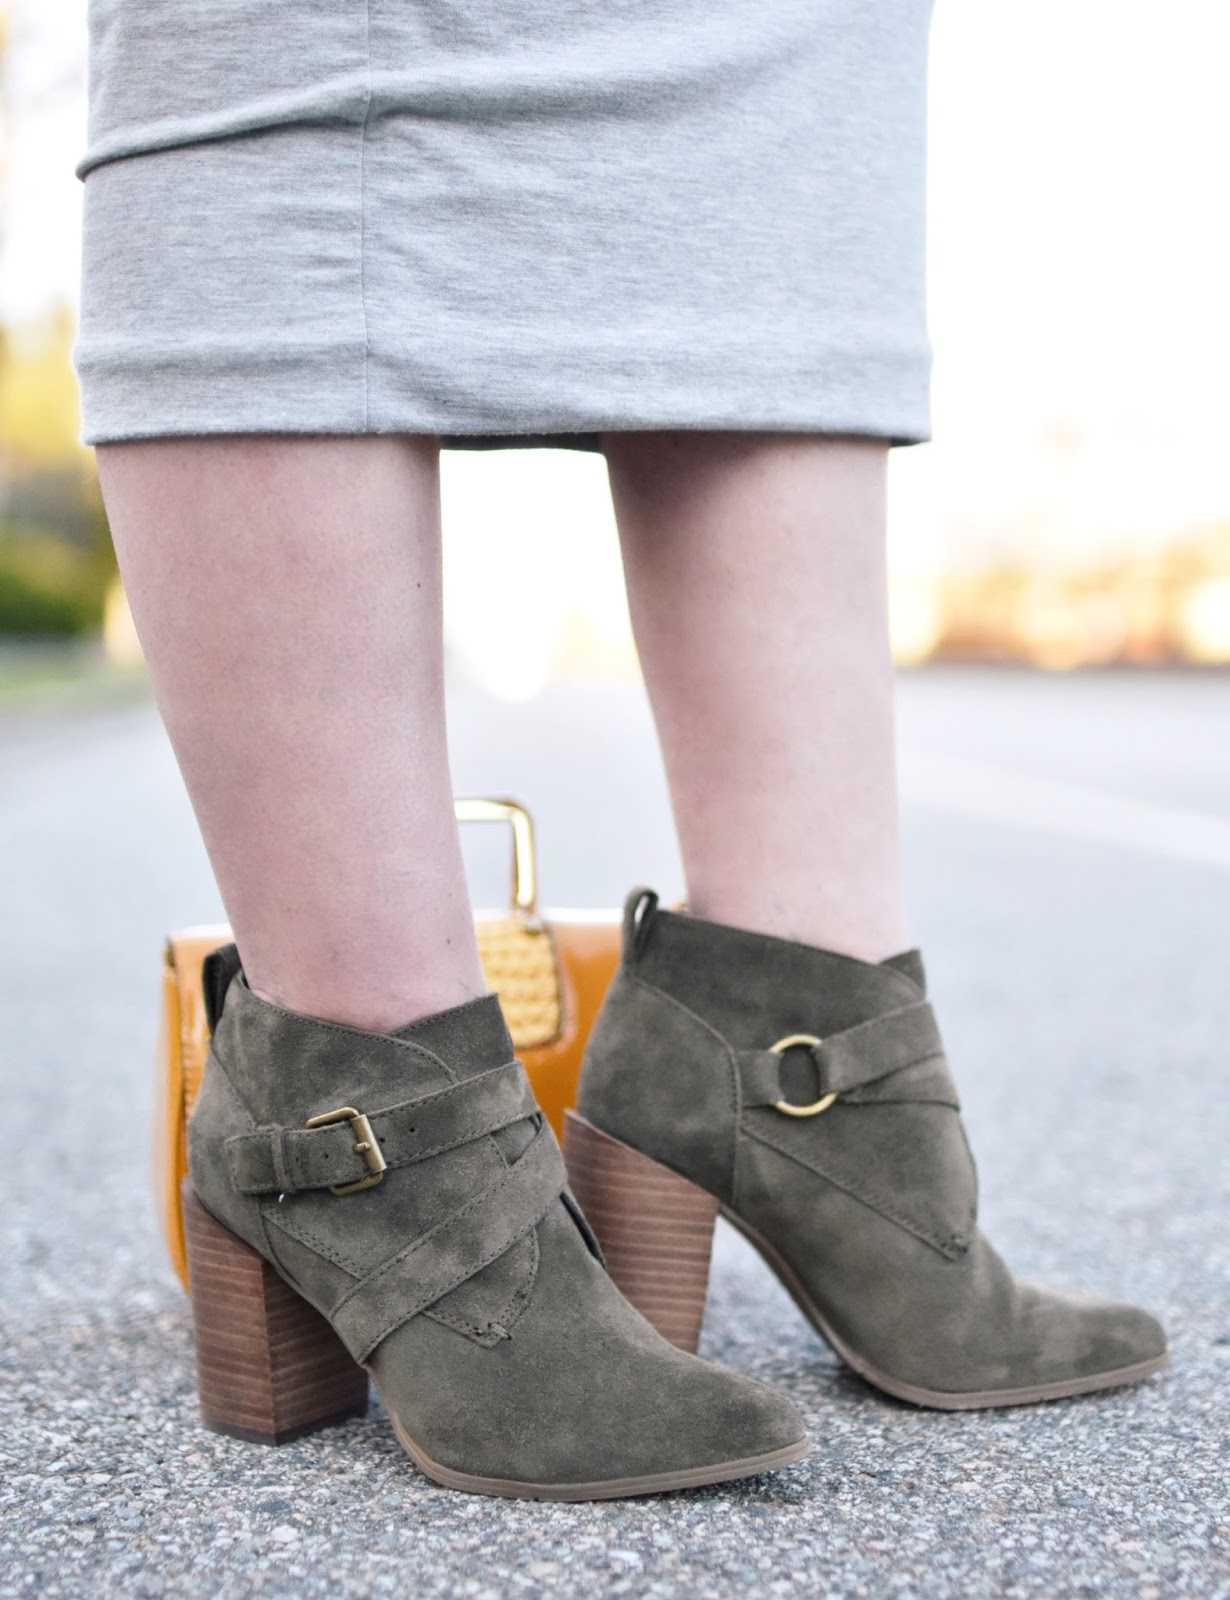 Monika Faulkner outfit inspiration - Nine West olive suede ankle boots